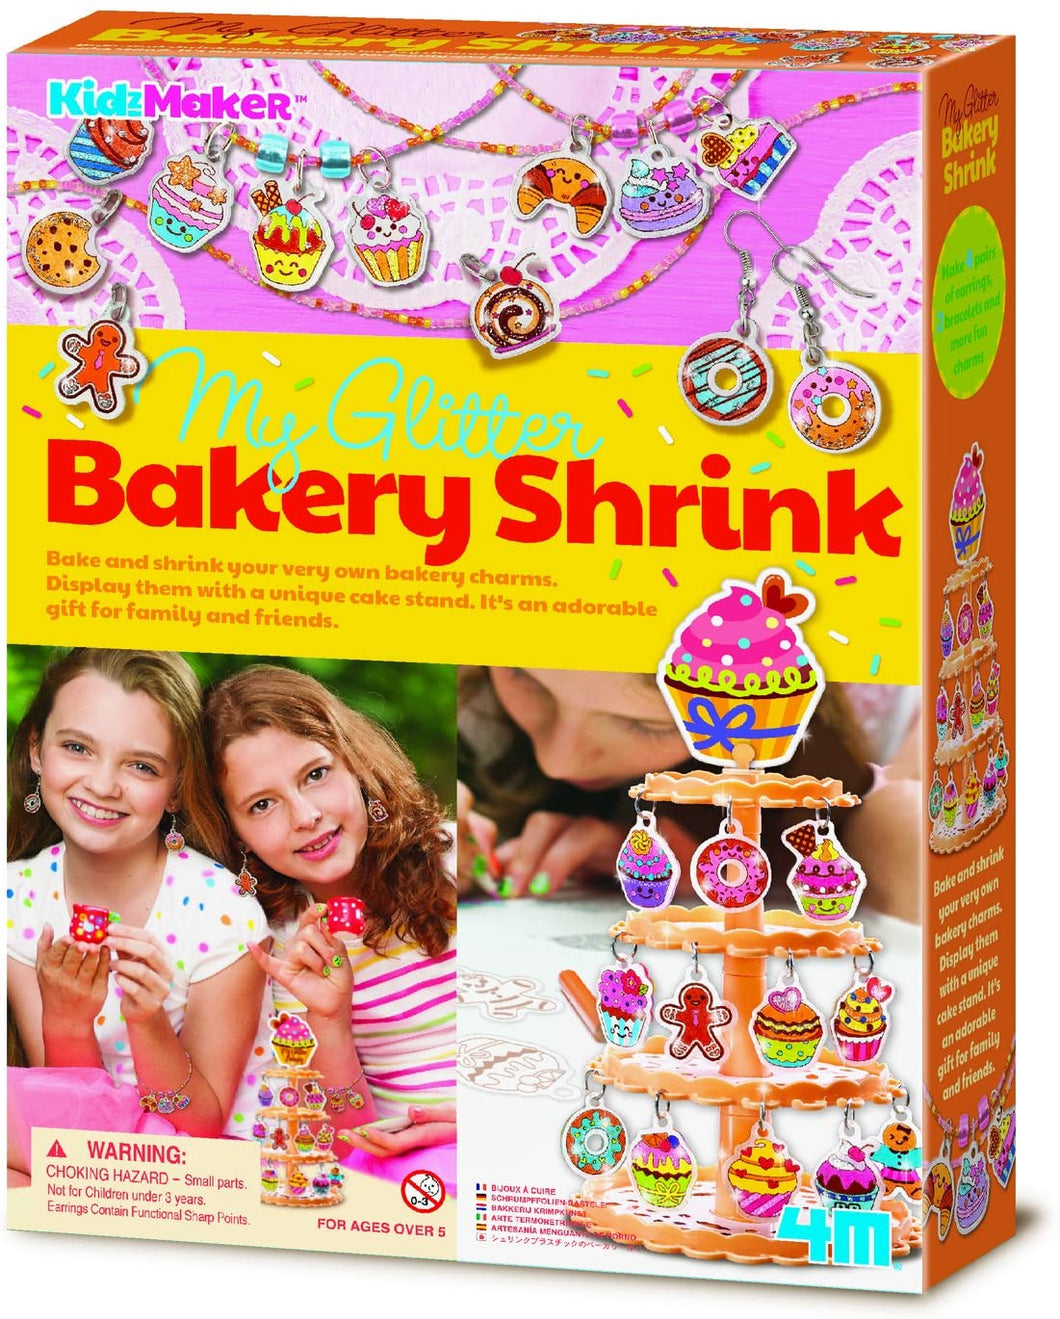 KidzMaker My Glitter Bakery Shrink Kit